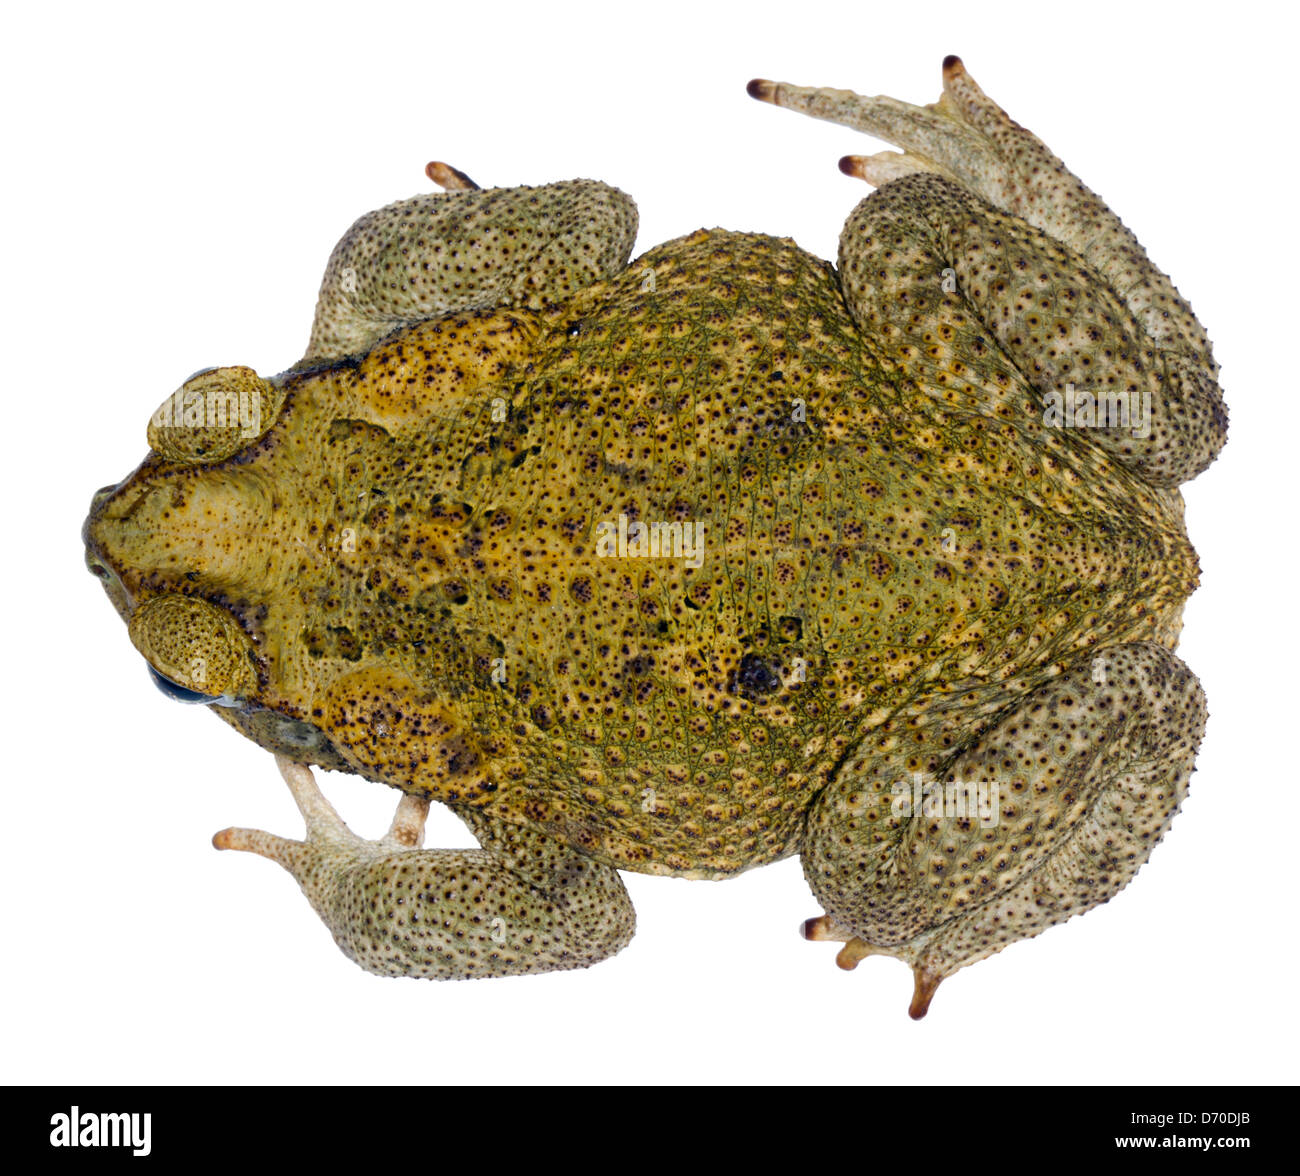 Cane Toad (Bufo marinus) Native to the Amazon Basin but an invasive pest elsewhere - Stock Image